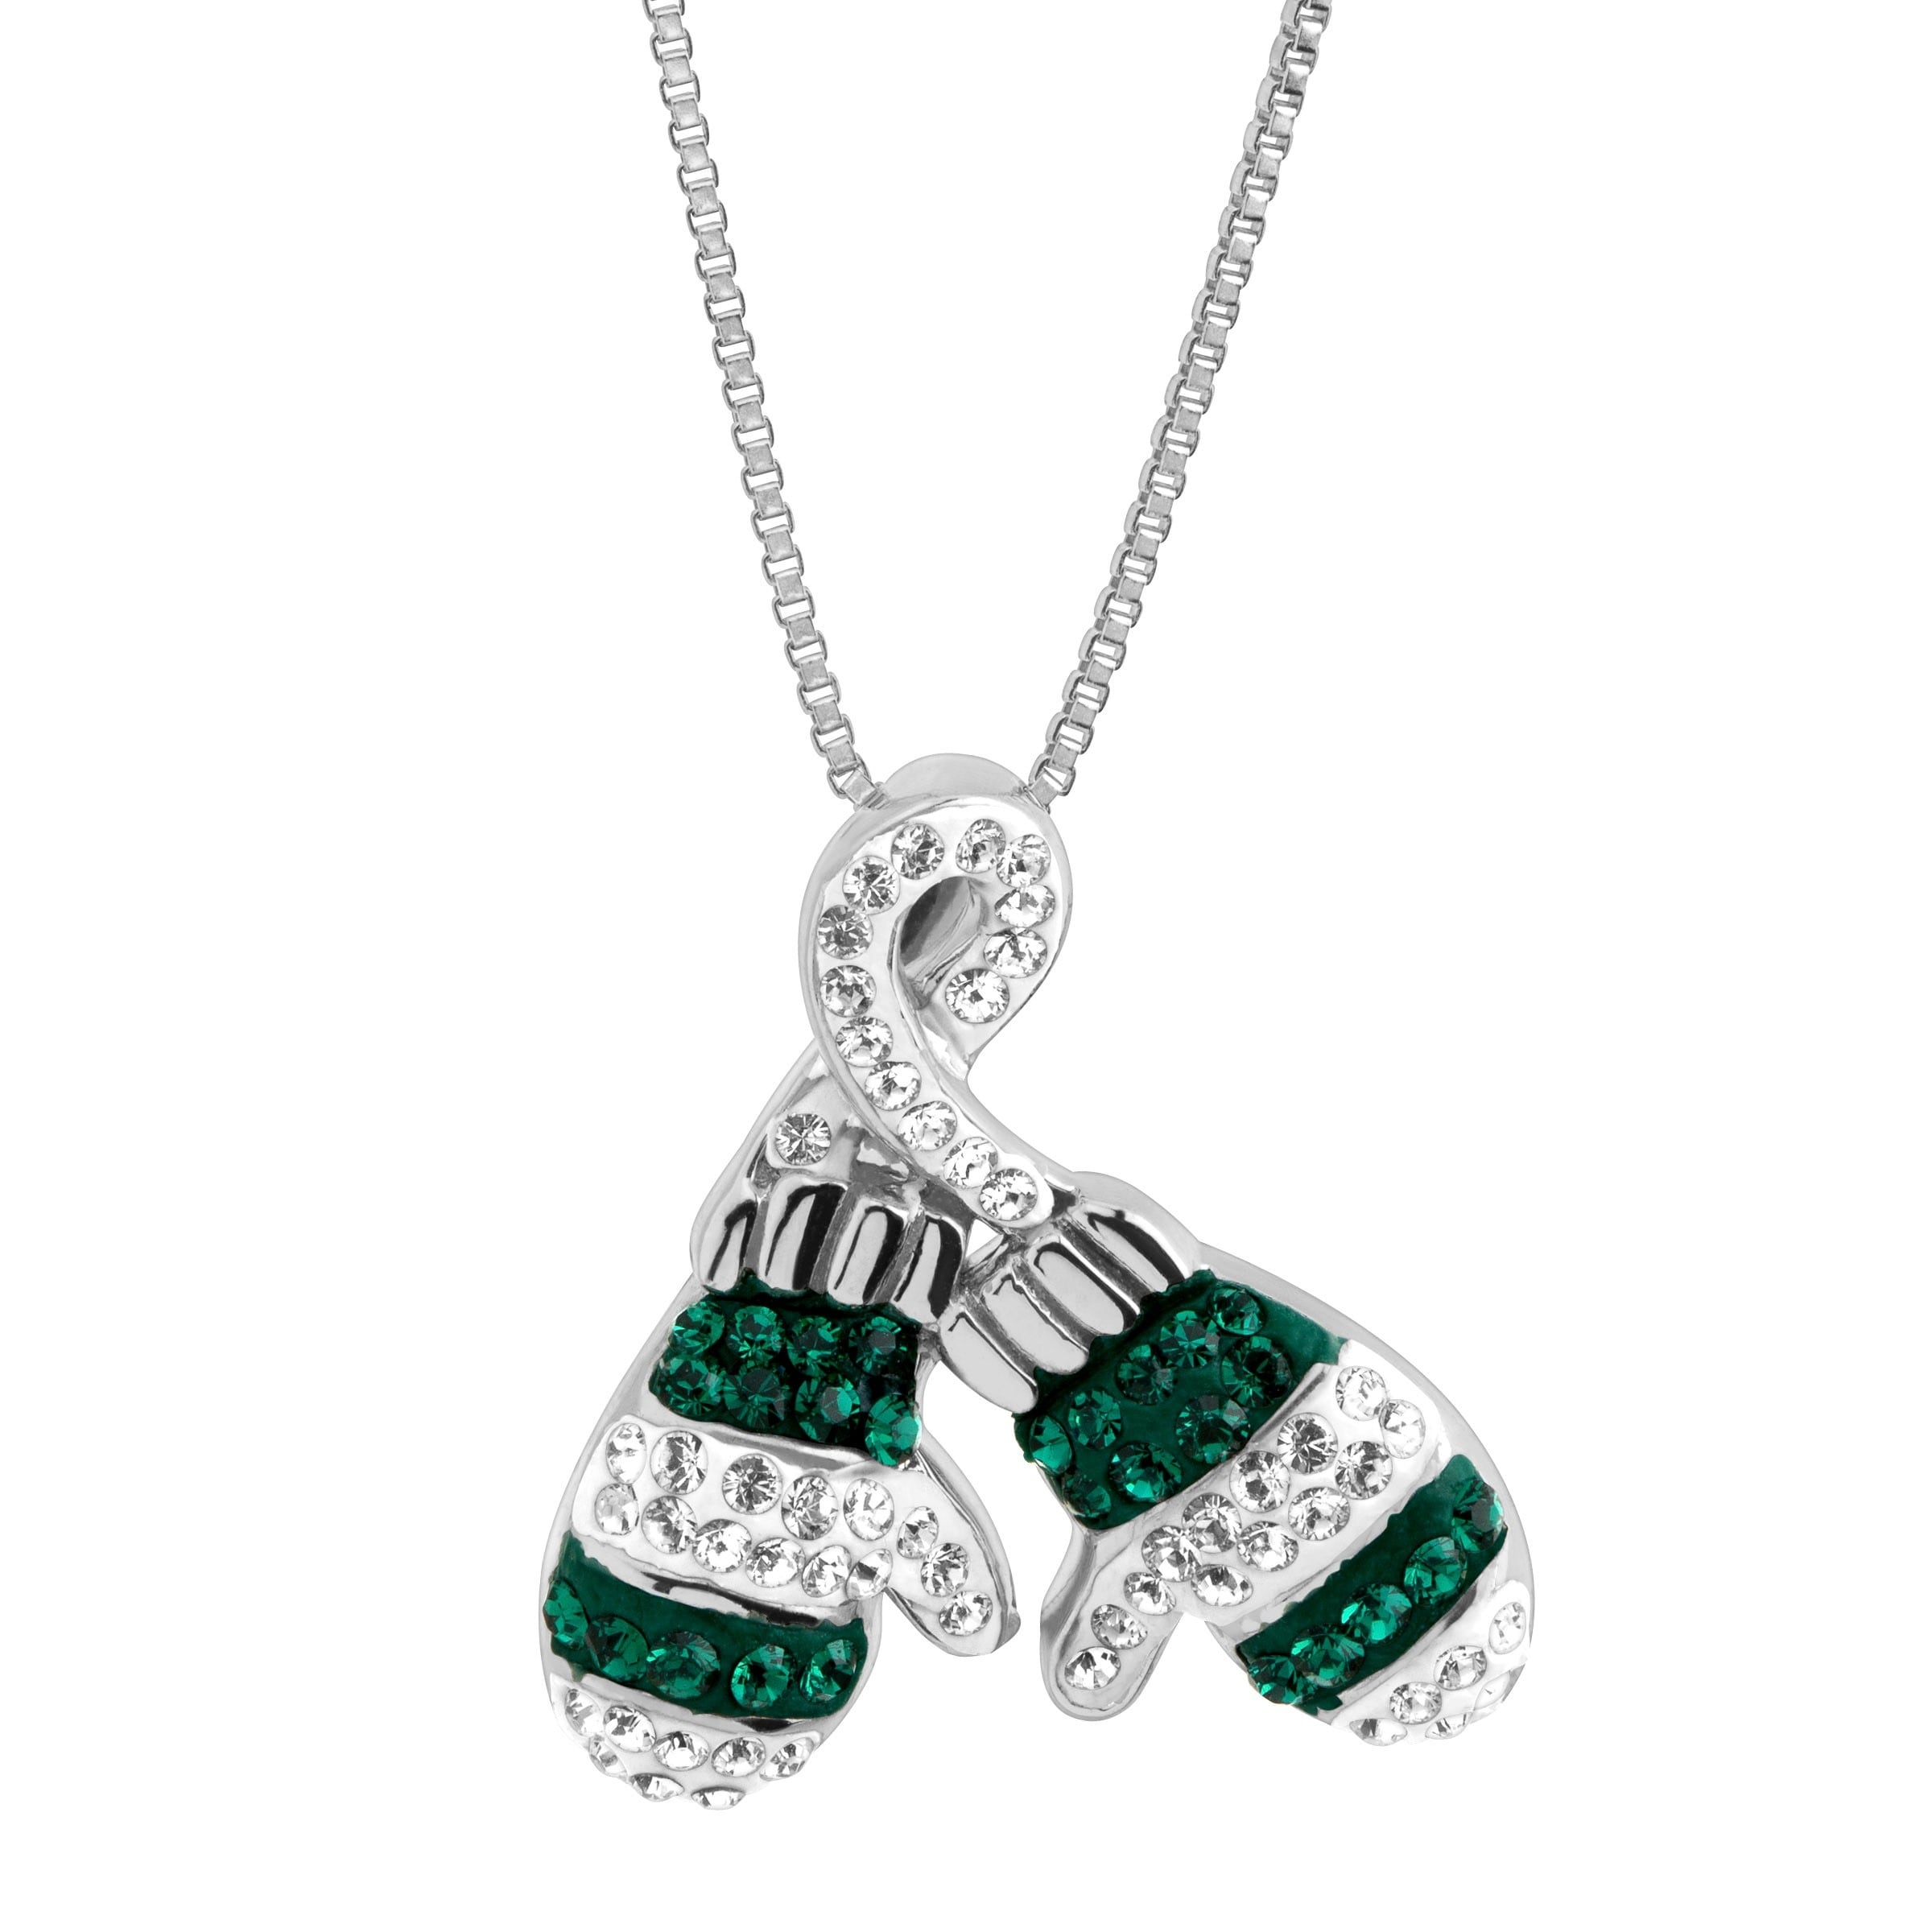 3916e02f46a6 Shop Crystaluxe Striped Mittens Pendant with Swarovski Crystals in Sterling  Silver - White - On Sale - Free Shipping Today - Overstock - 18657992